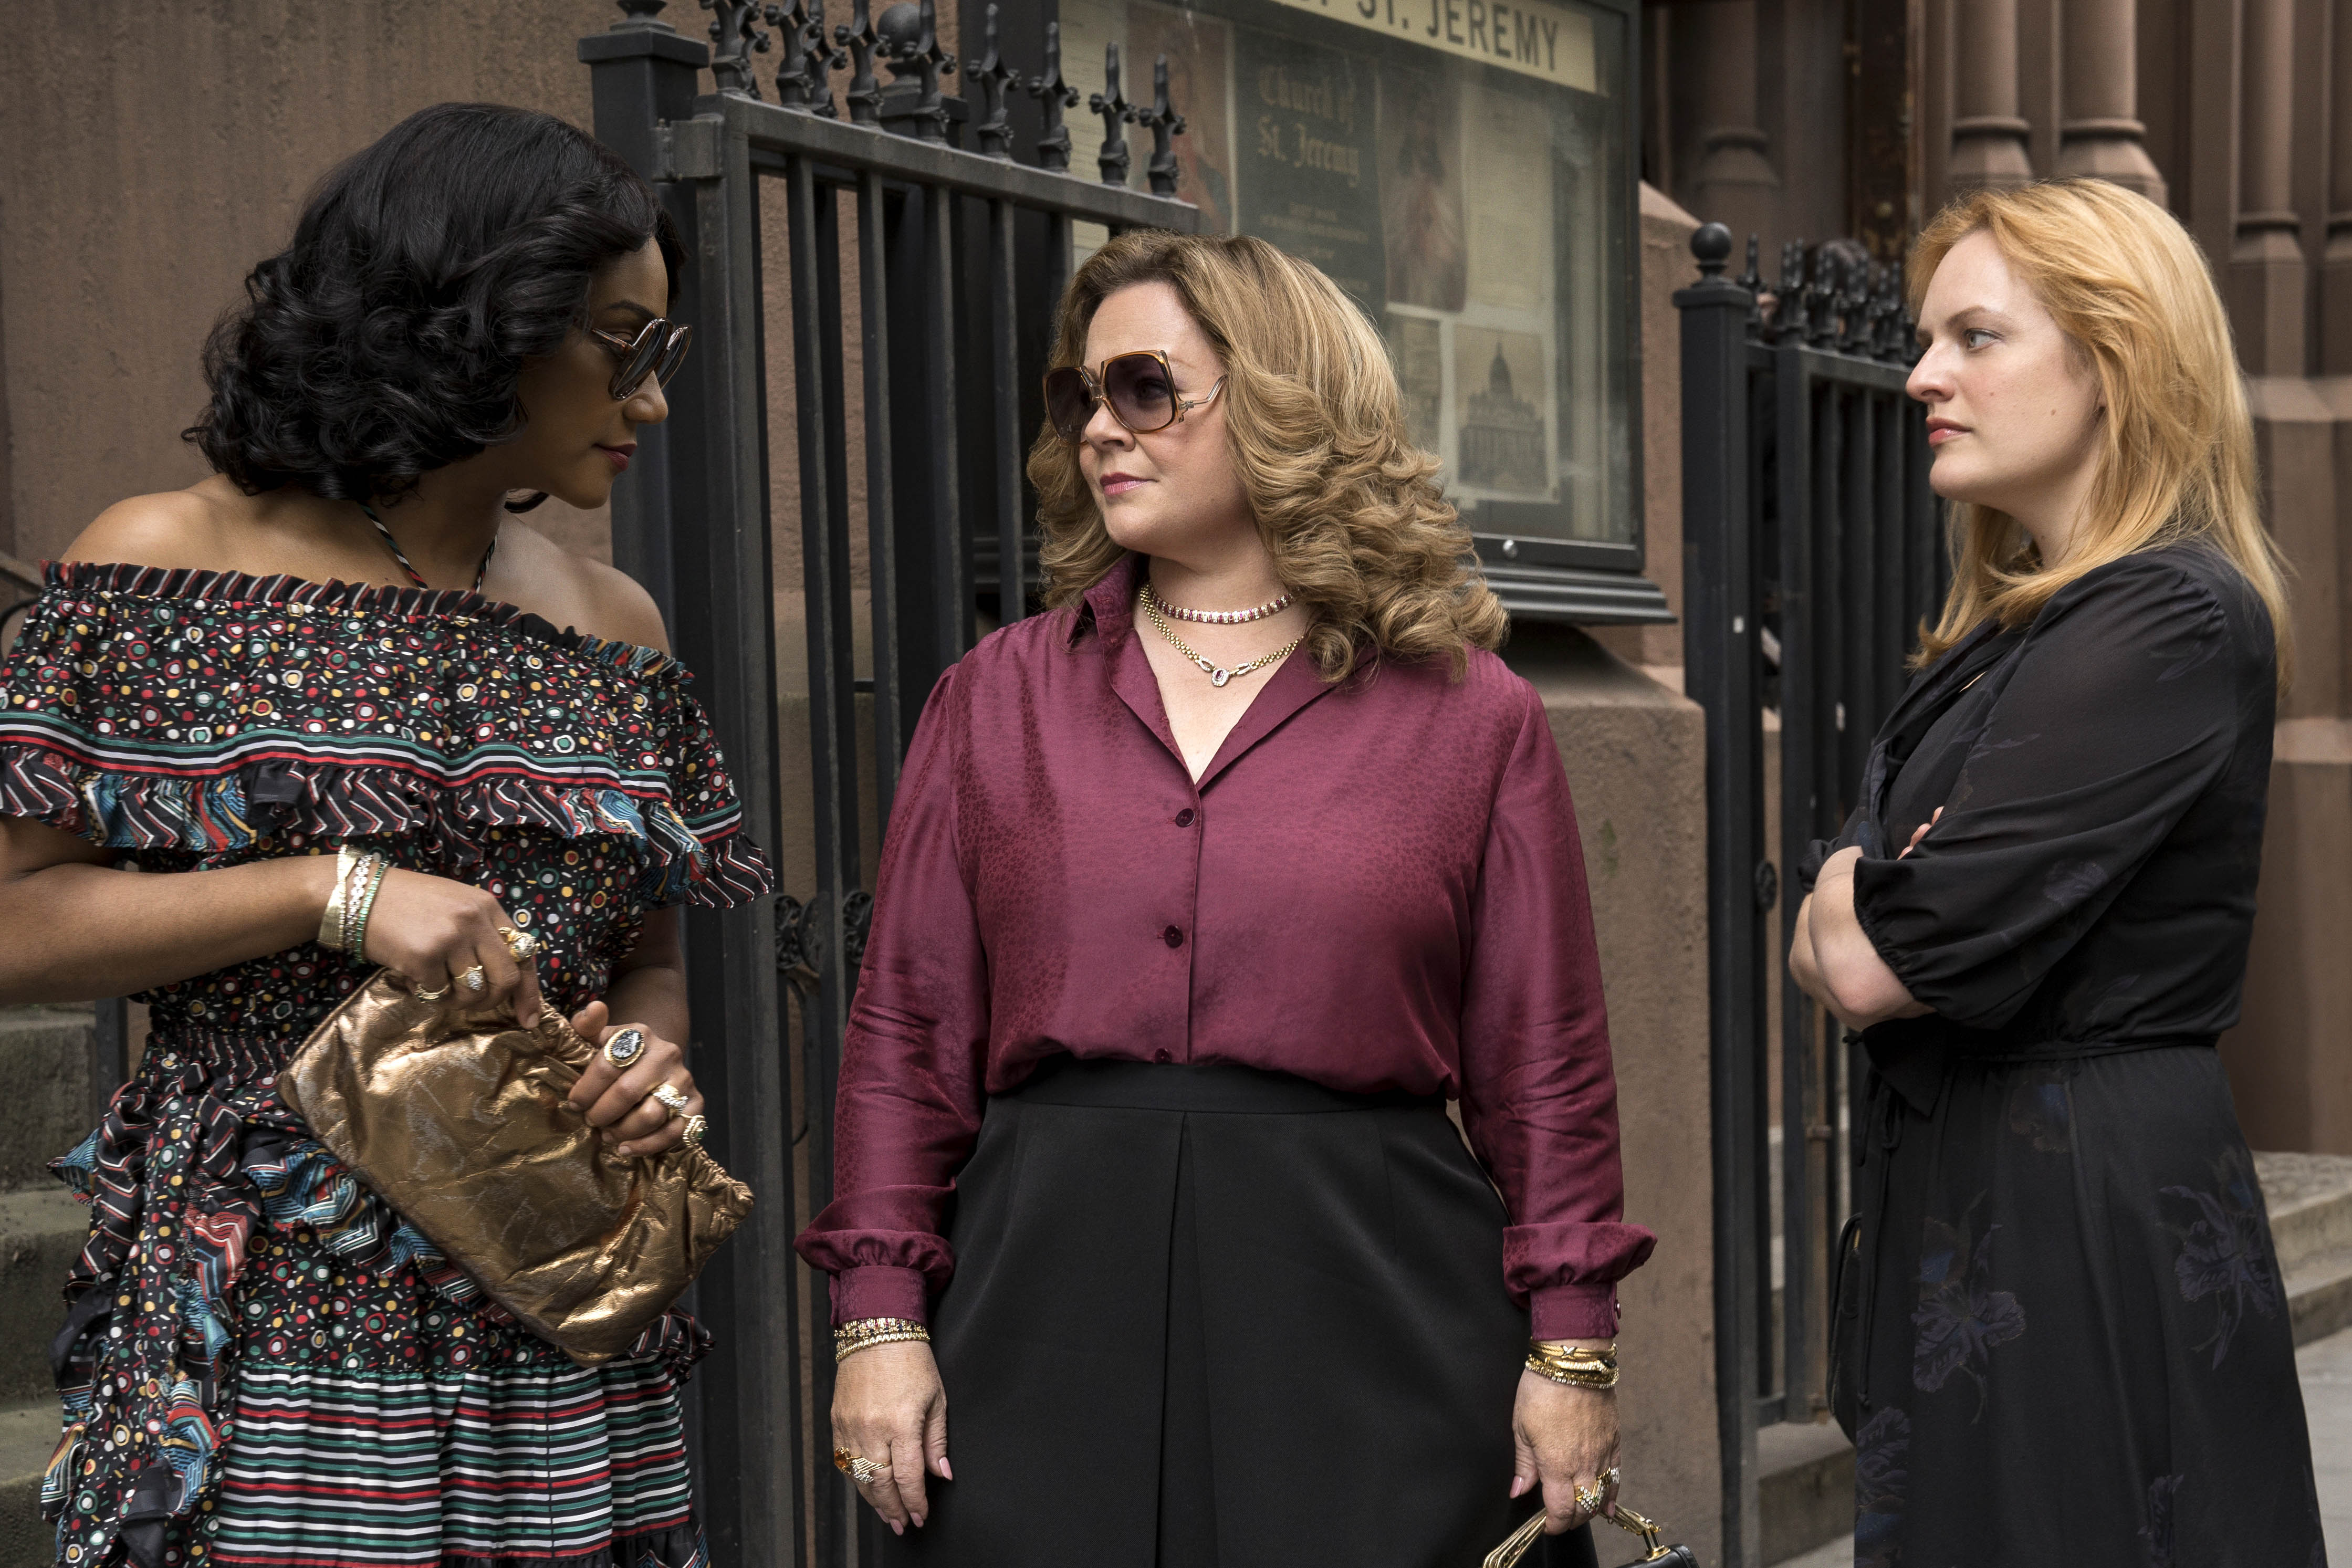 Tiffany Haddish, Melissa McCarthy, and Elisabeth Moss star in a scene from the movie